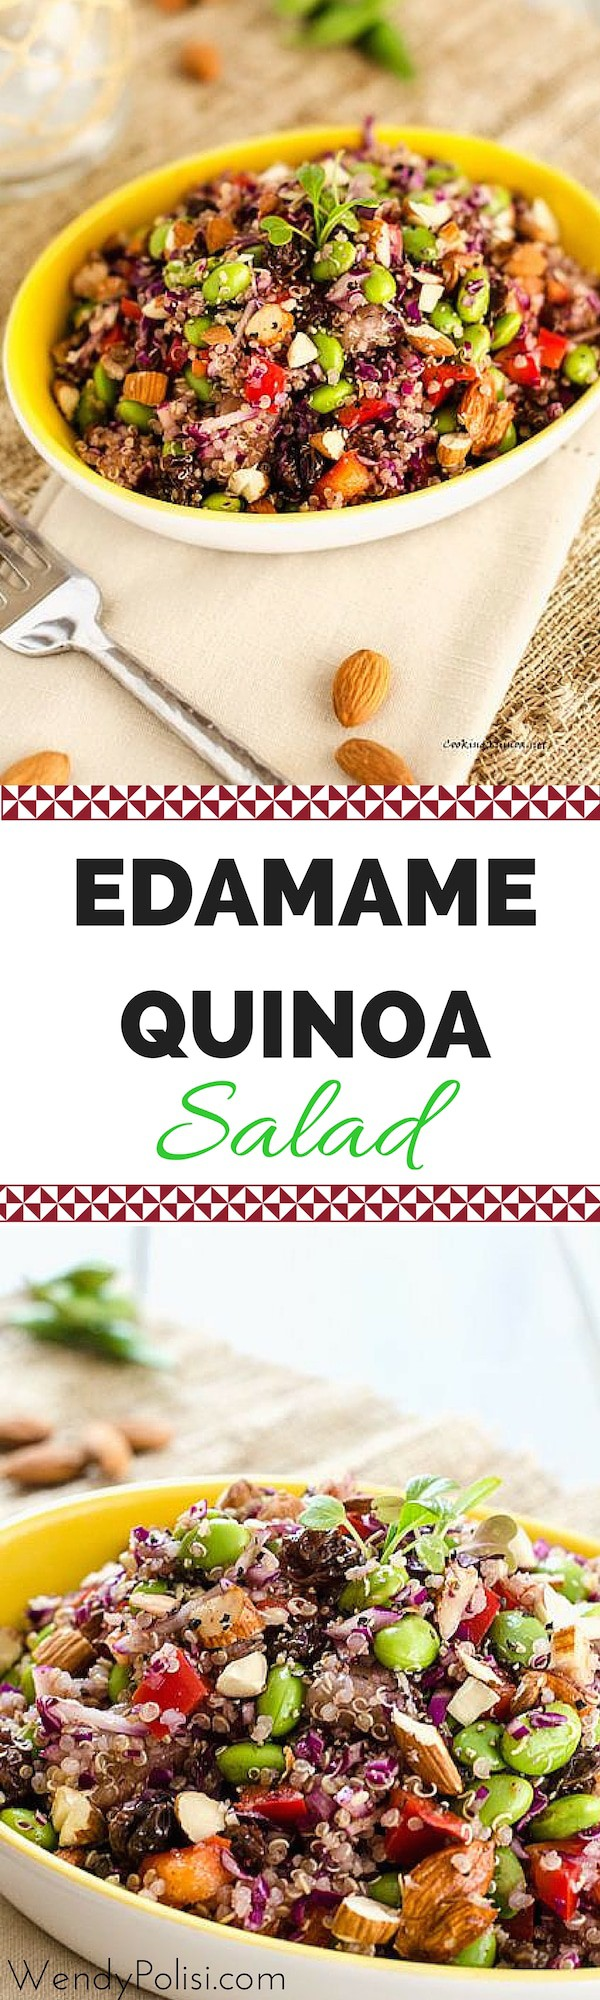 This Edamame Quinoa Salad is a delicious vegan salad that even meat-eaters will find hearty enough for a meal! It is a great make-ahead lunch for the busy work week!